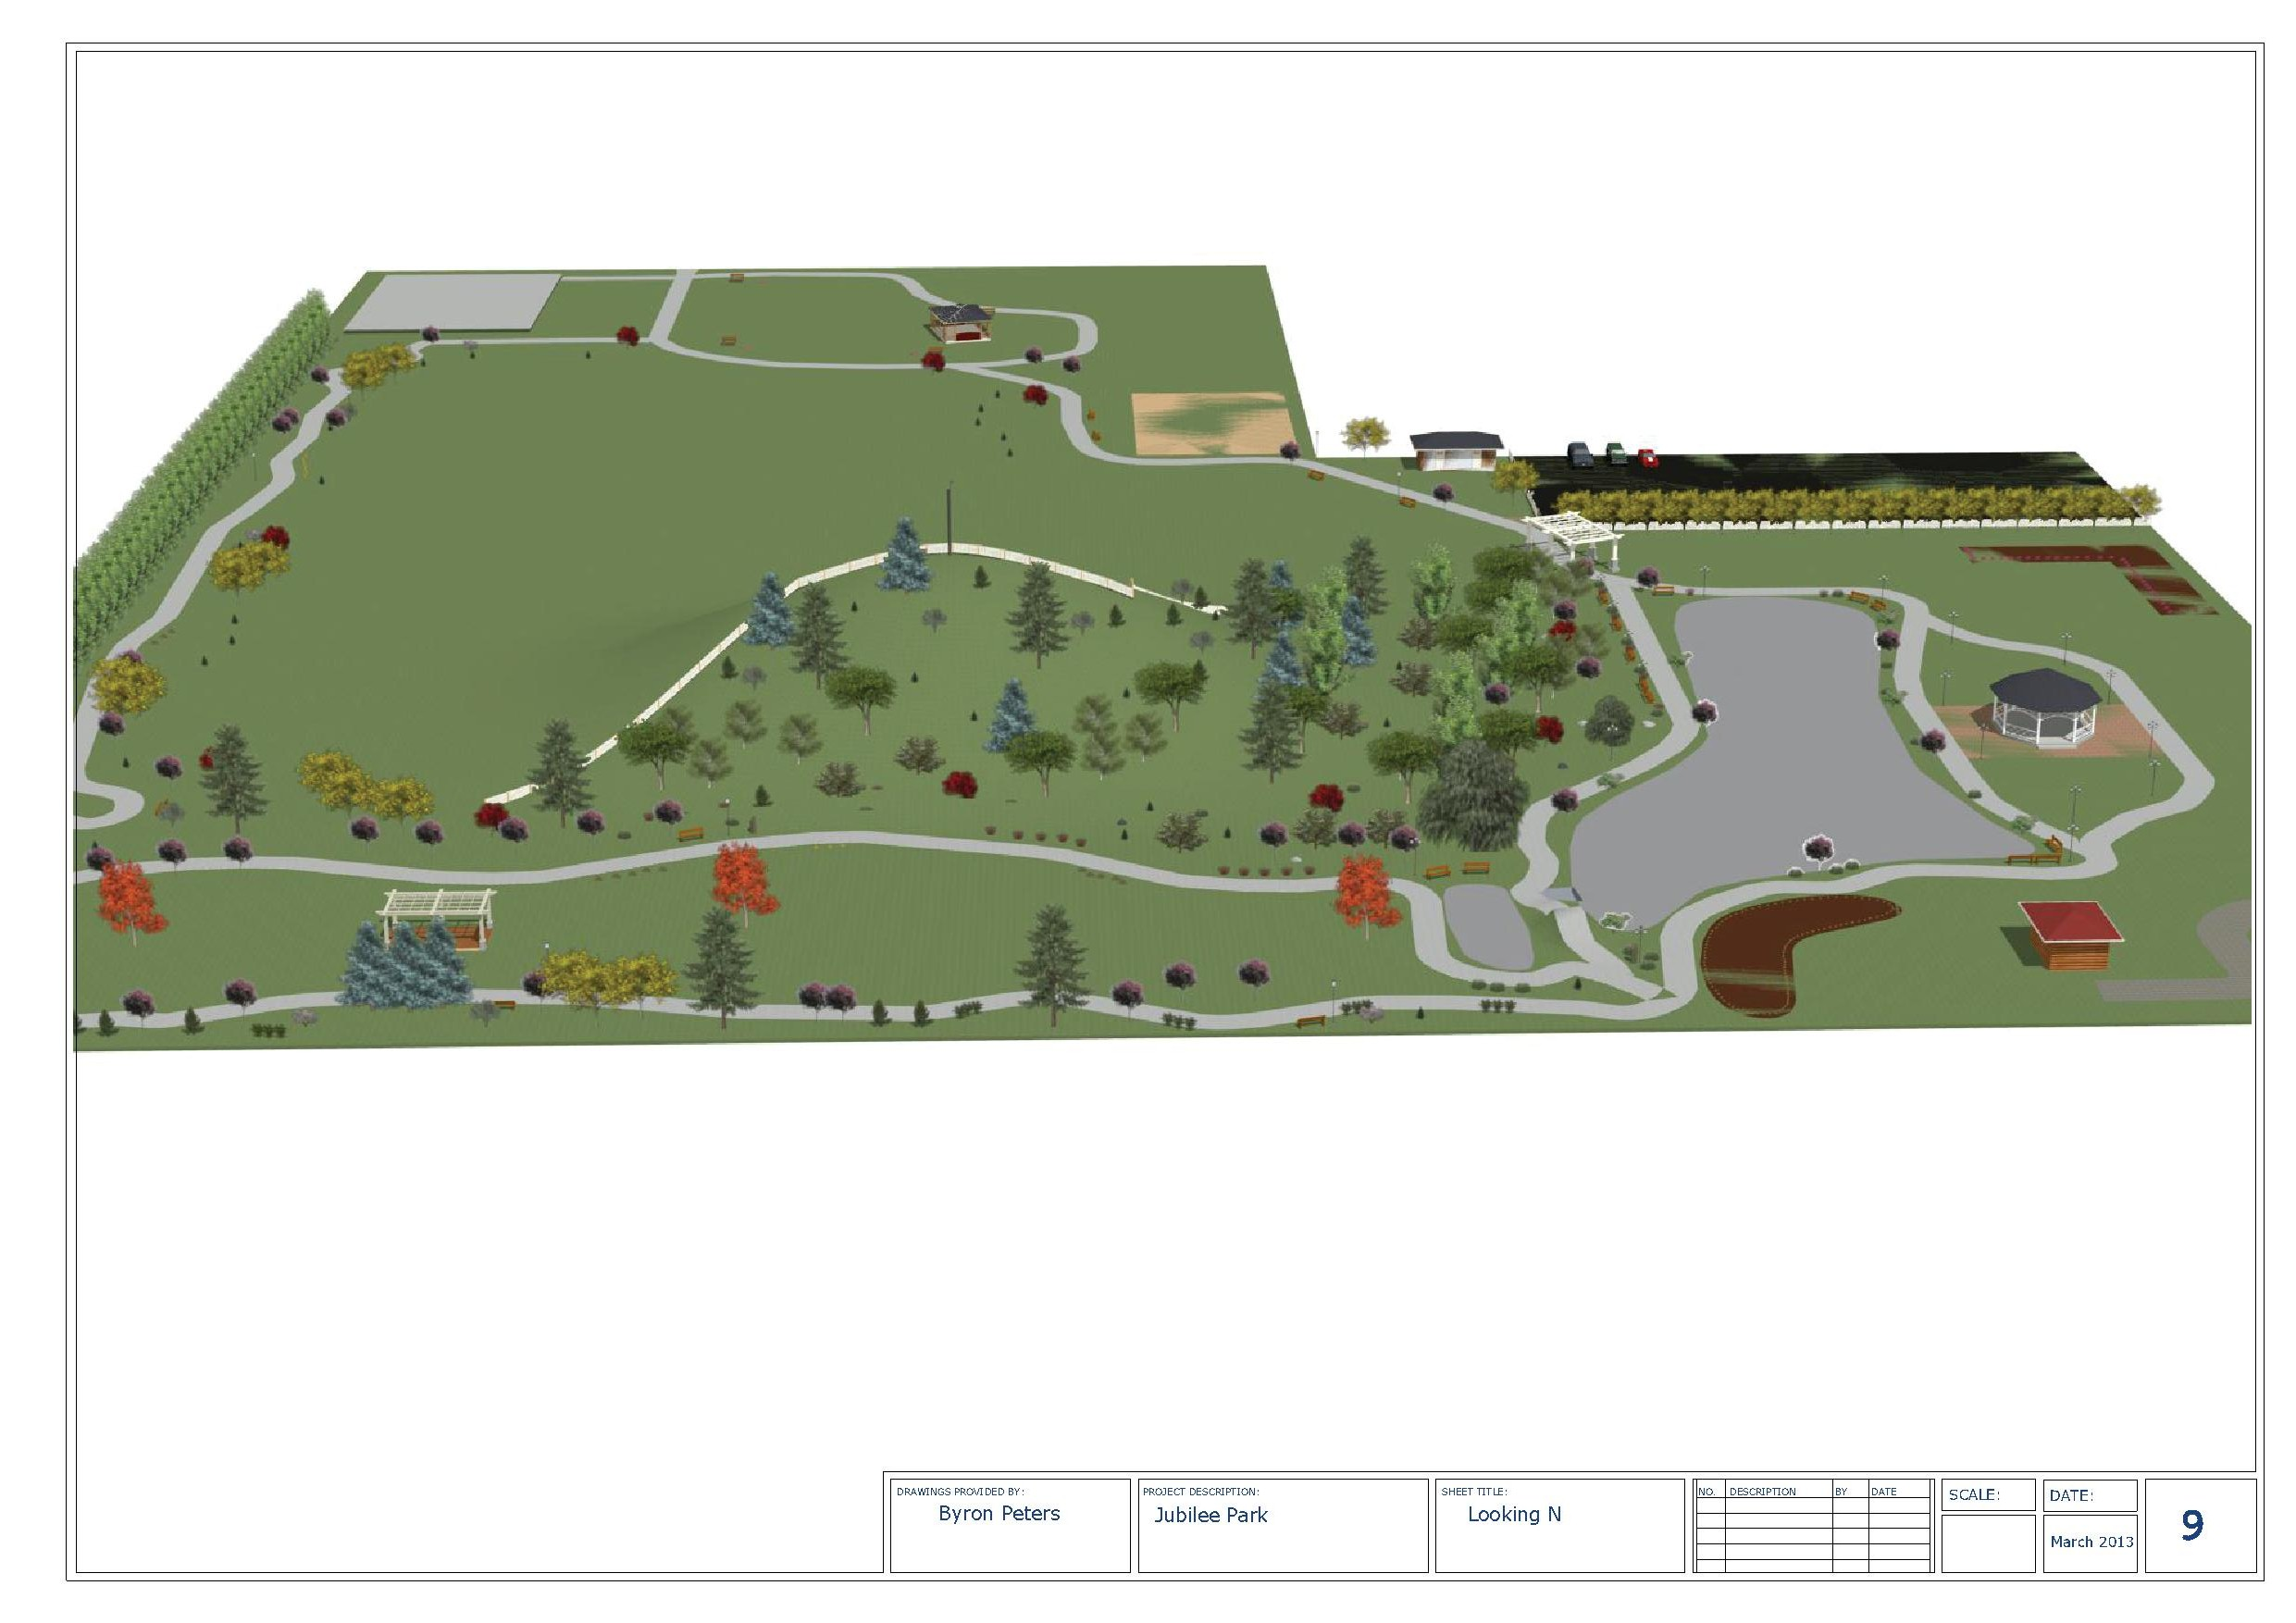 Jubilee Park Proposed Layout 9